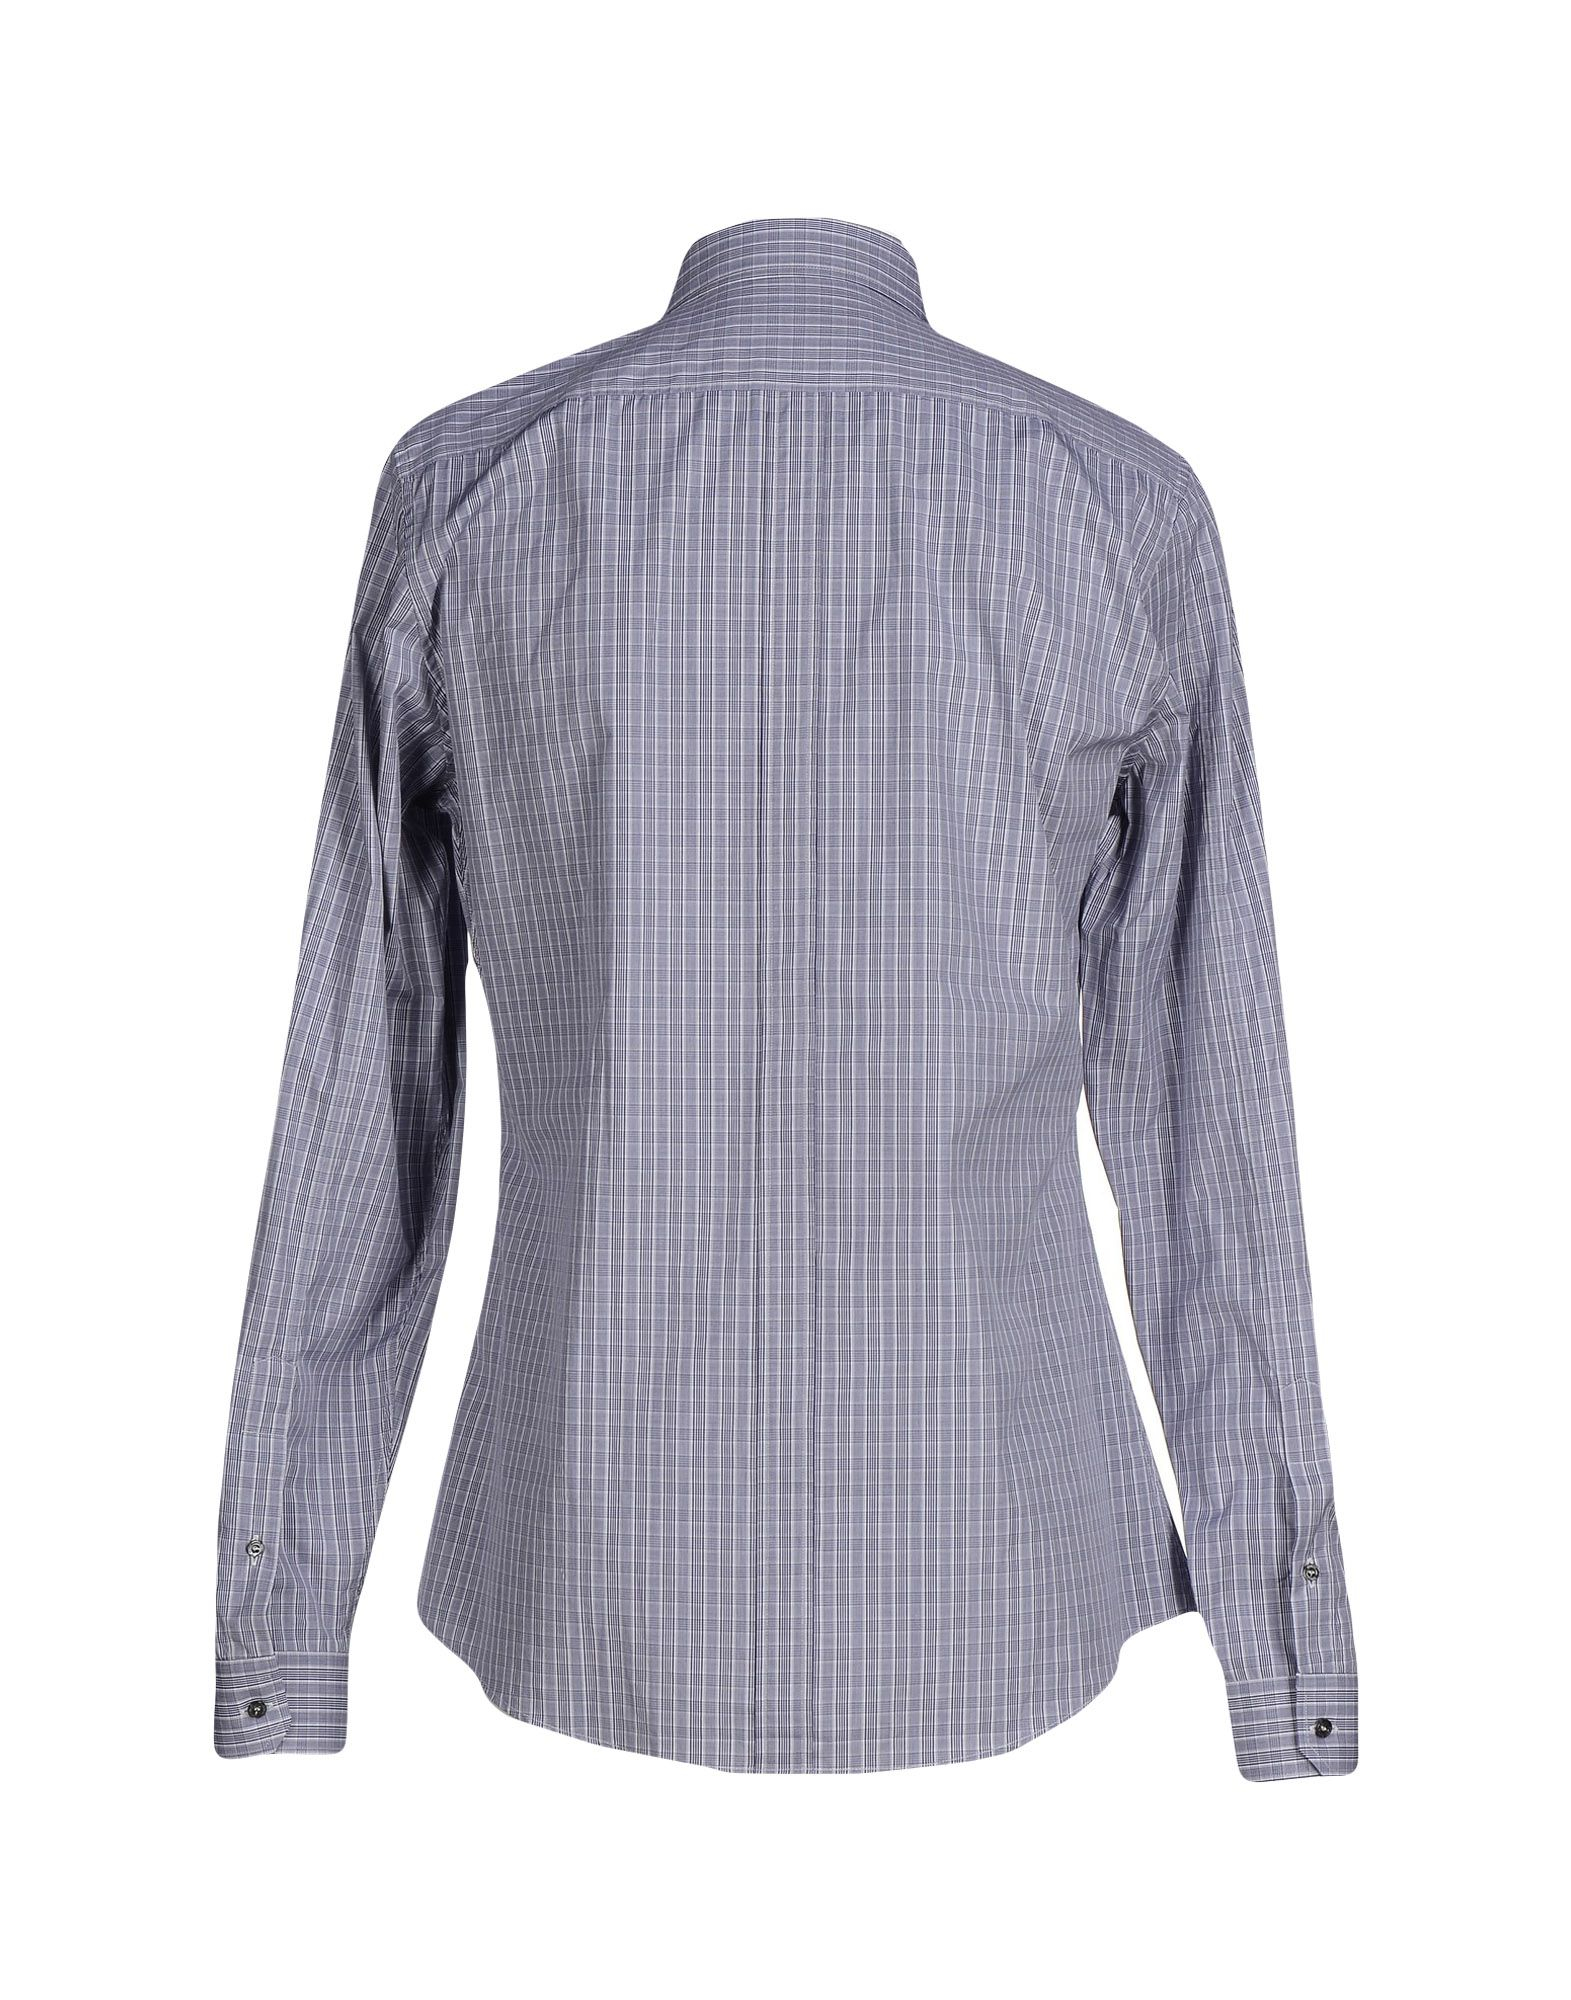 Gucci shirt in blue for men lyst for Gucci t shirts online india